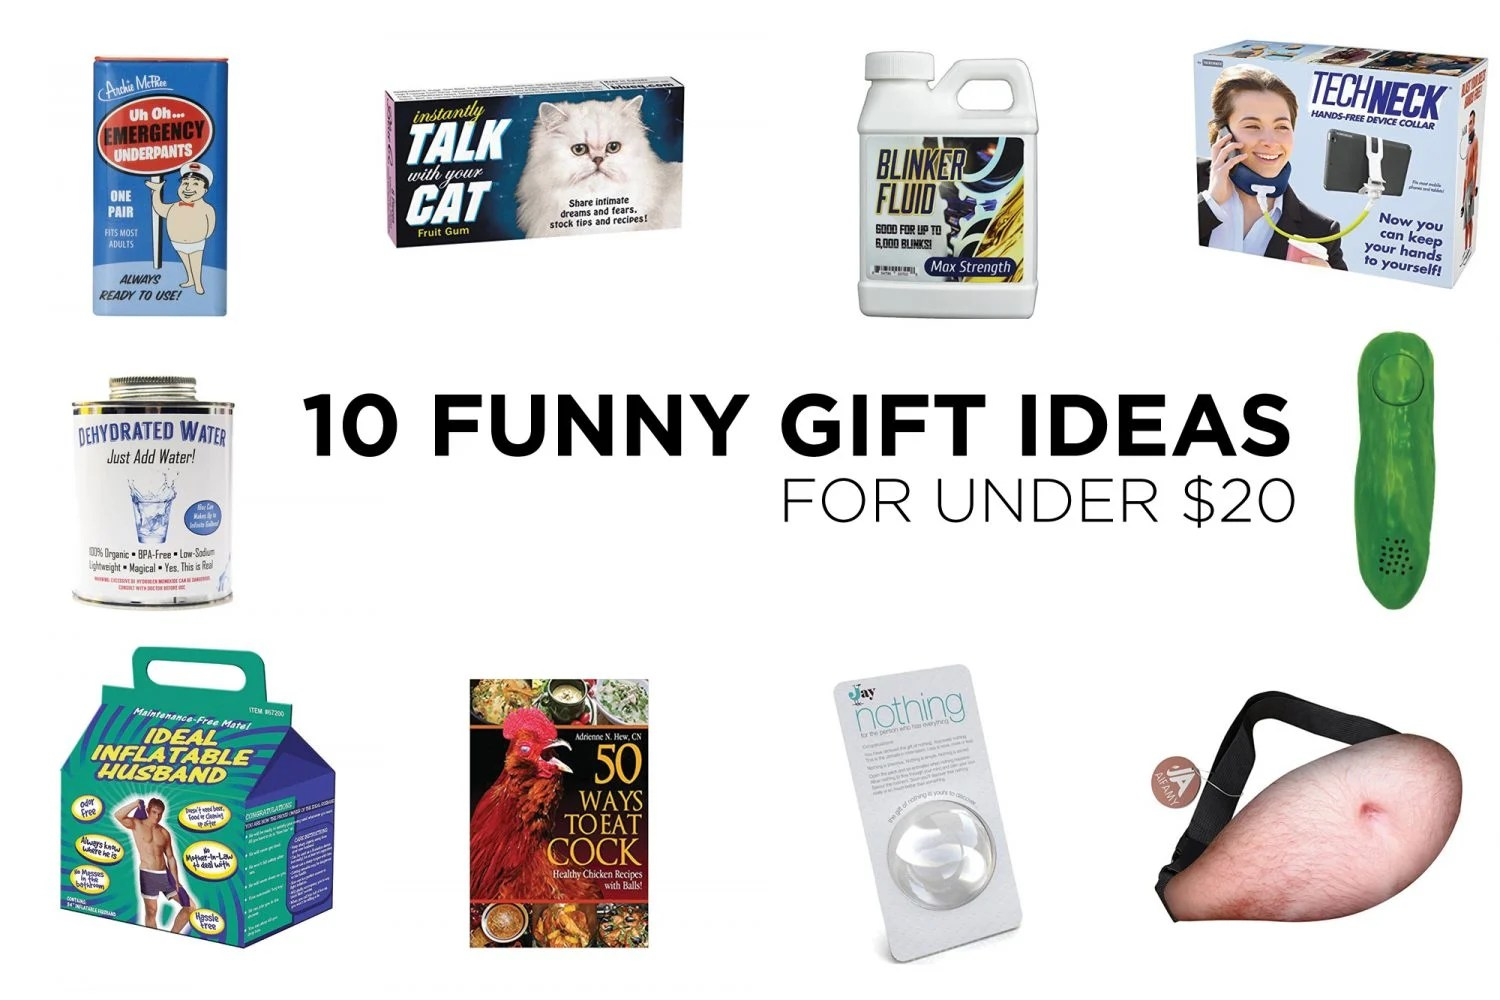 funny gift ideas, funny gifts, gag gifts, novelty gifts, gag gifts 2018, joke gifts, christmas gifts, white elephant, mother's day gifts, father's day gifts, strangest gift ideas, weirdest gift ideas, weird gifts, strange gifts, birthday gifts, white elephant gifts, secret santa gifts, mom blog, mom blogger, mommy blog, mommy blogger, 2018, beer belly fanny pack, yodeling pickle, emergency underwear